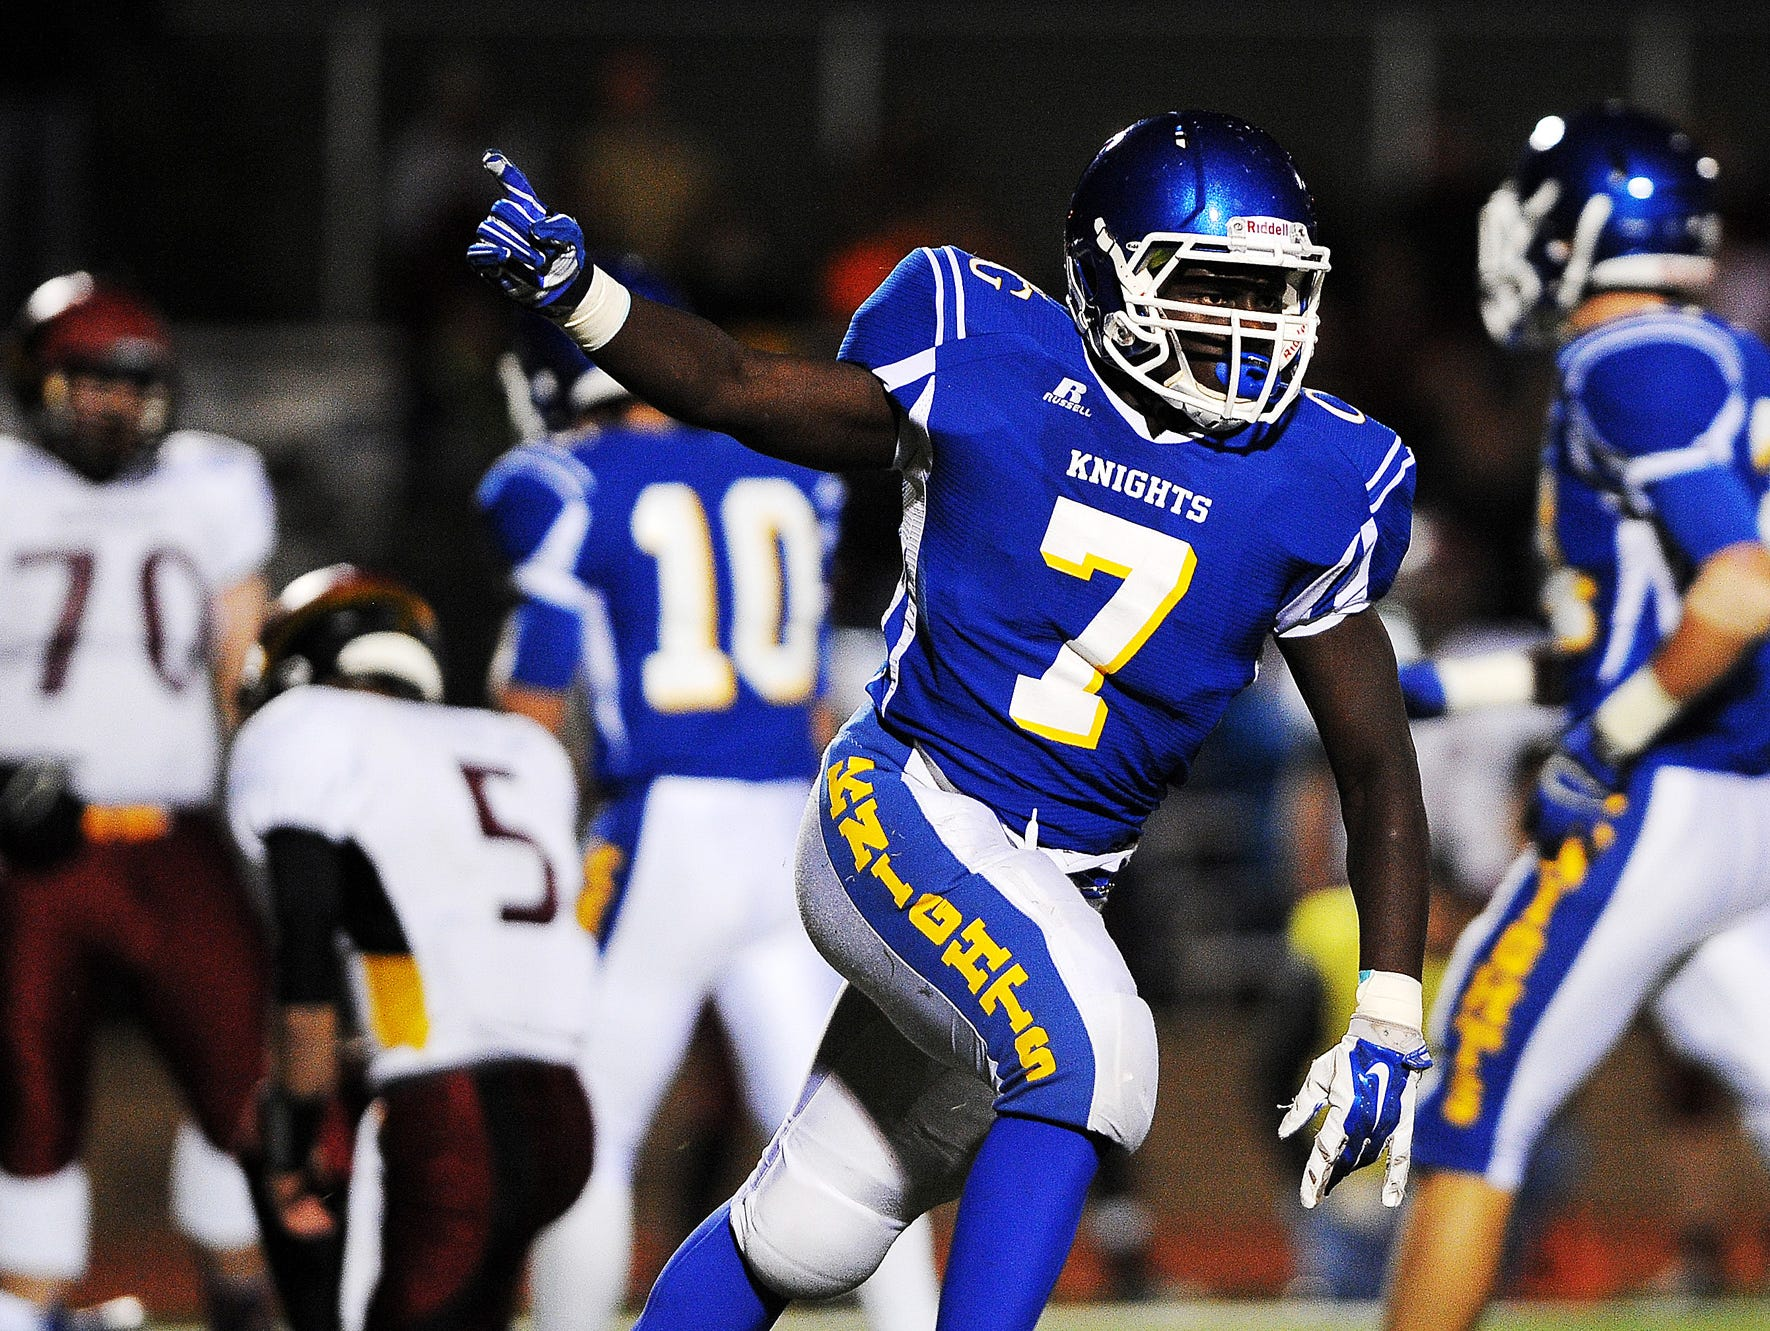 O'Gorman's Jimmy Pio (7) reacts after the Knights recovered a fumble during a game against Roosevelt on Friday, Oct. 17, 2014, at McEneaney Field on the O'Gorman High School campus in Sioux Falls, S.D.